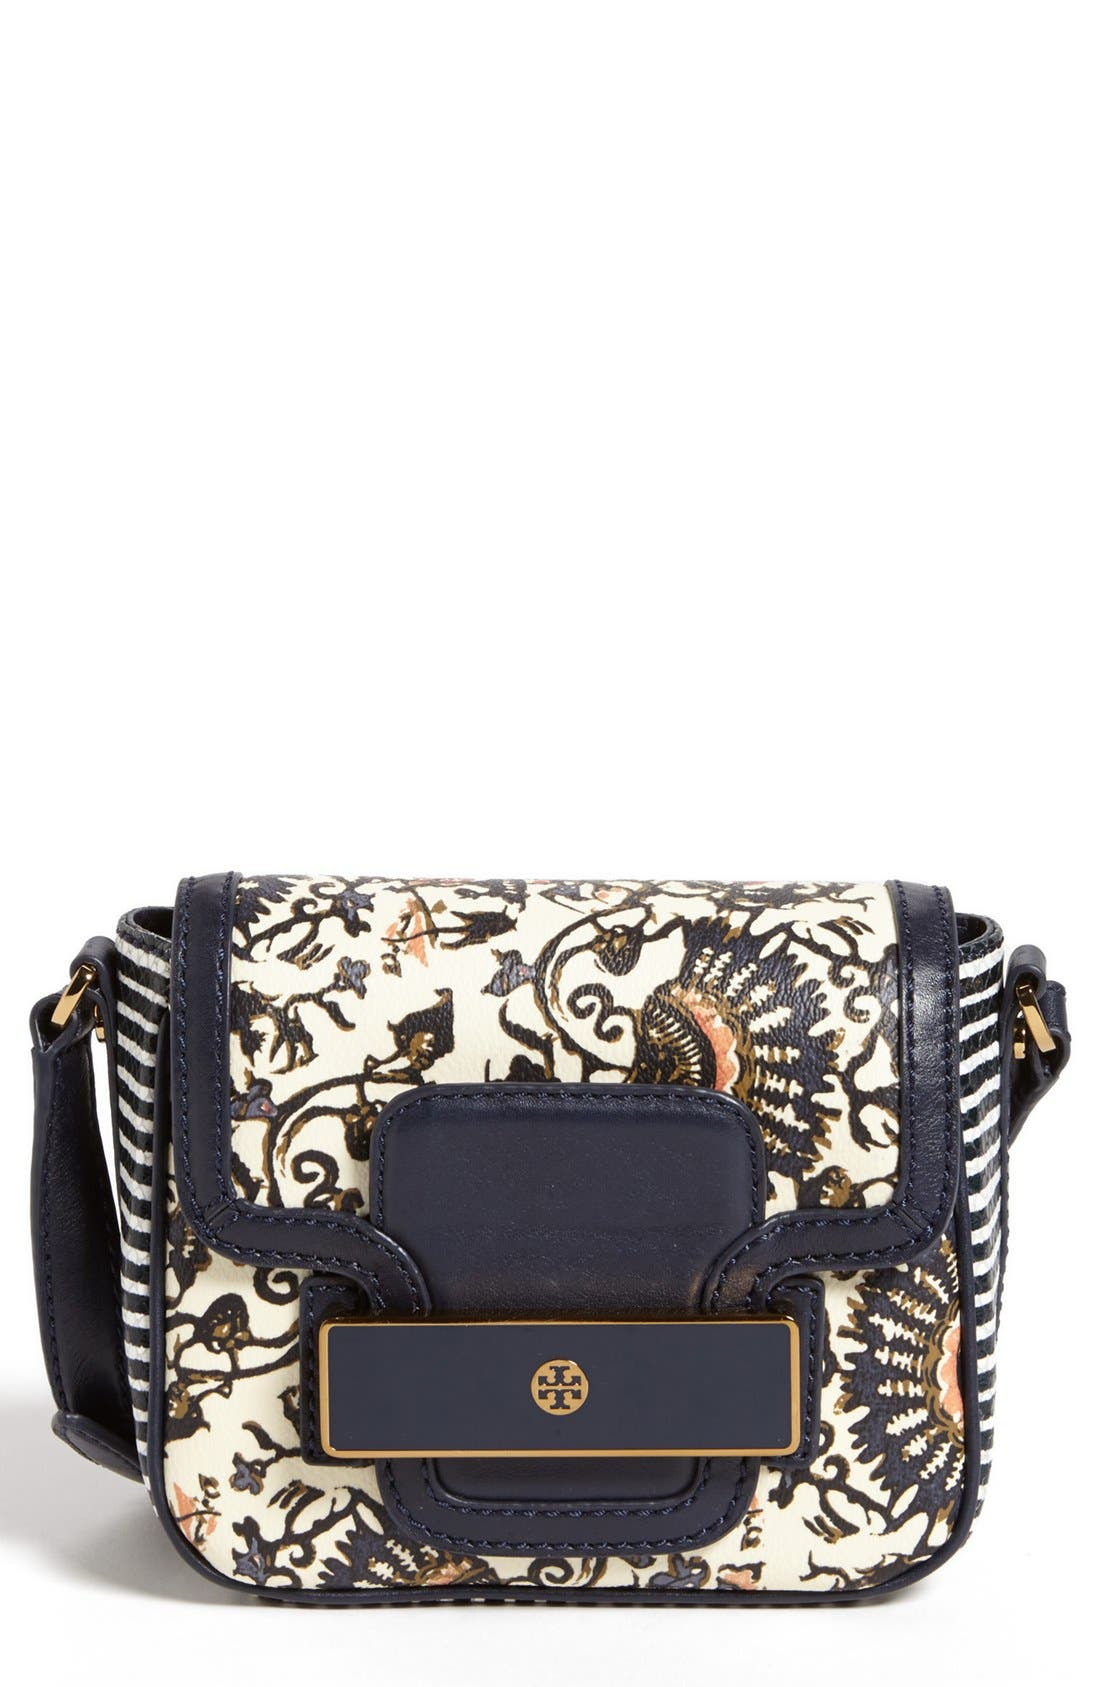 Alternate Image 1 Selected - Tory Burch 'Jeweled' Leather Crossbody Bag